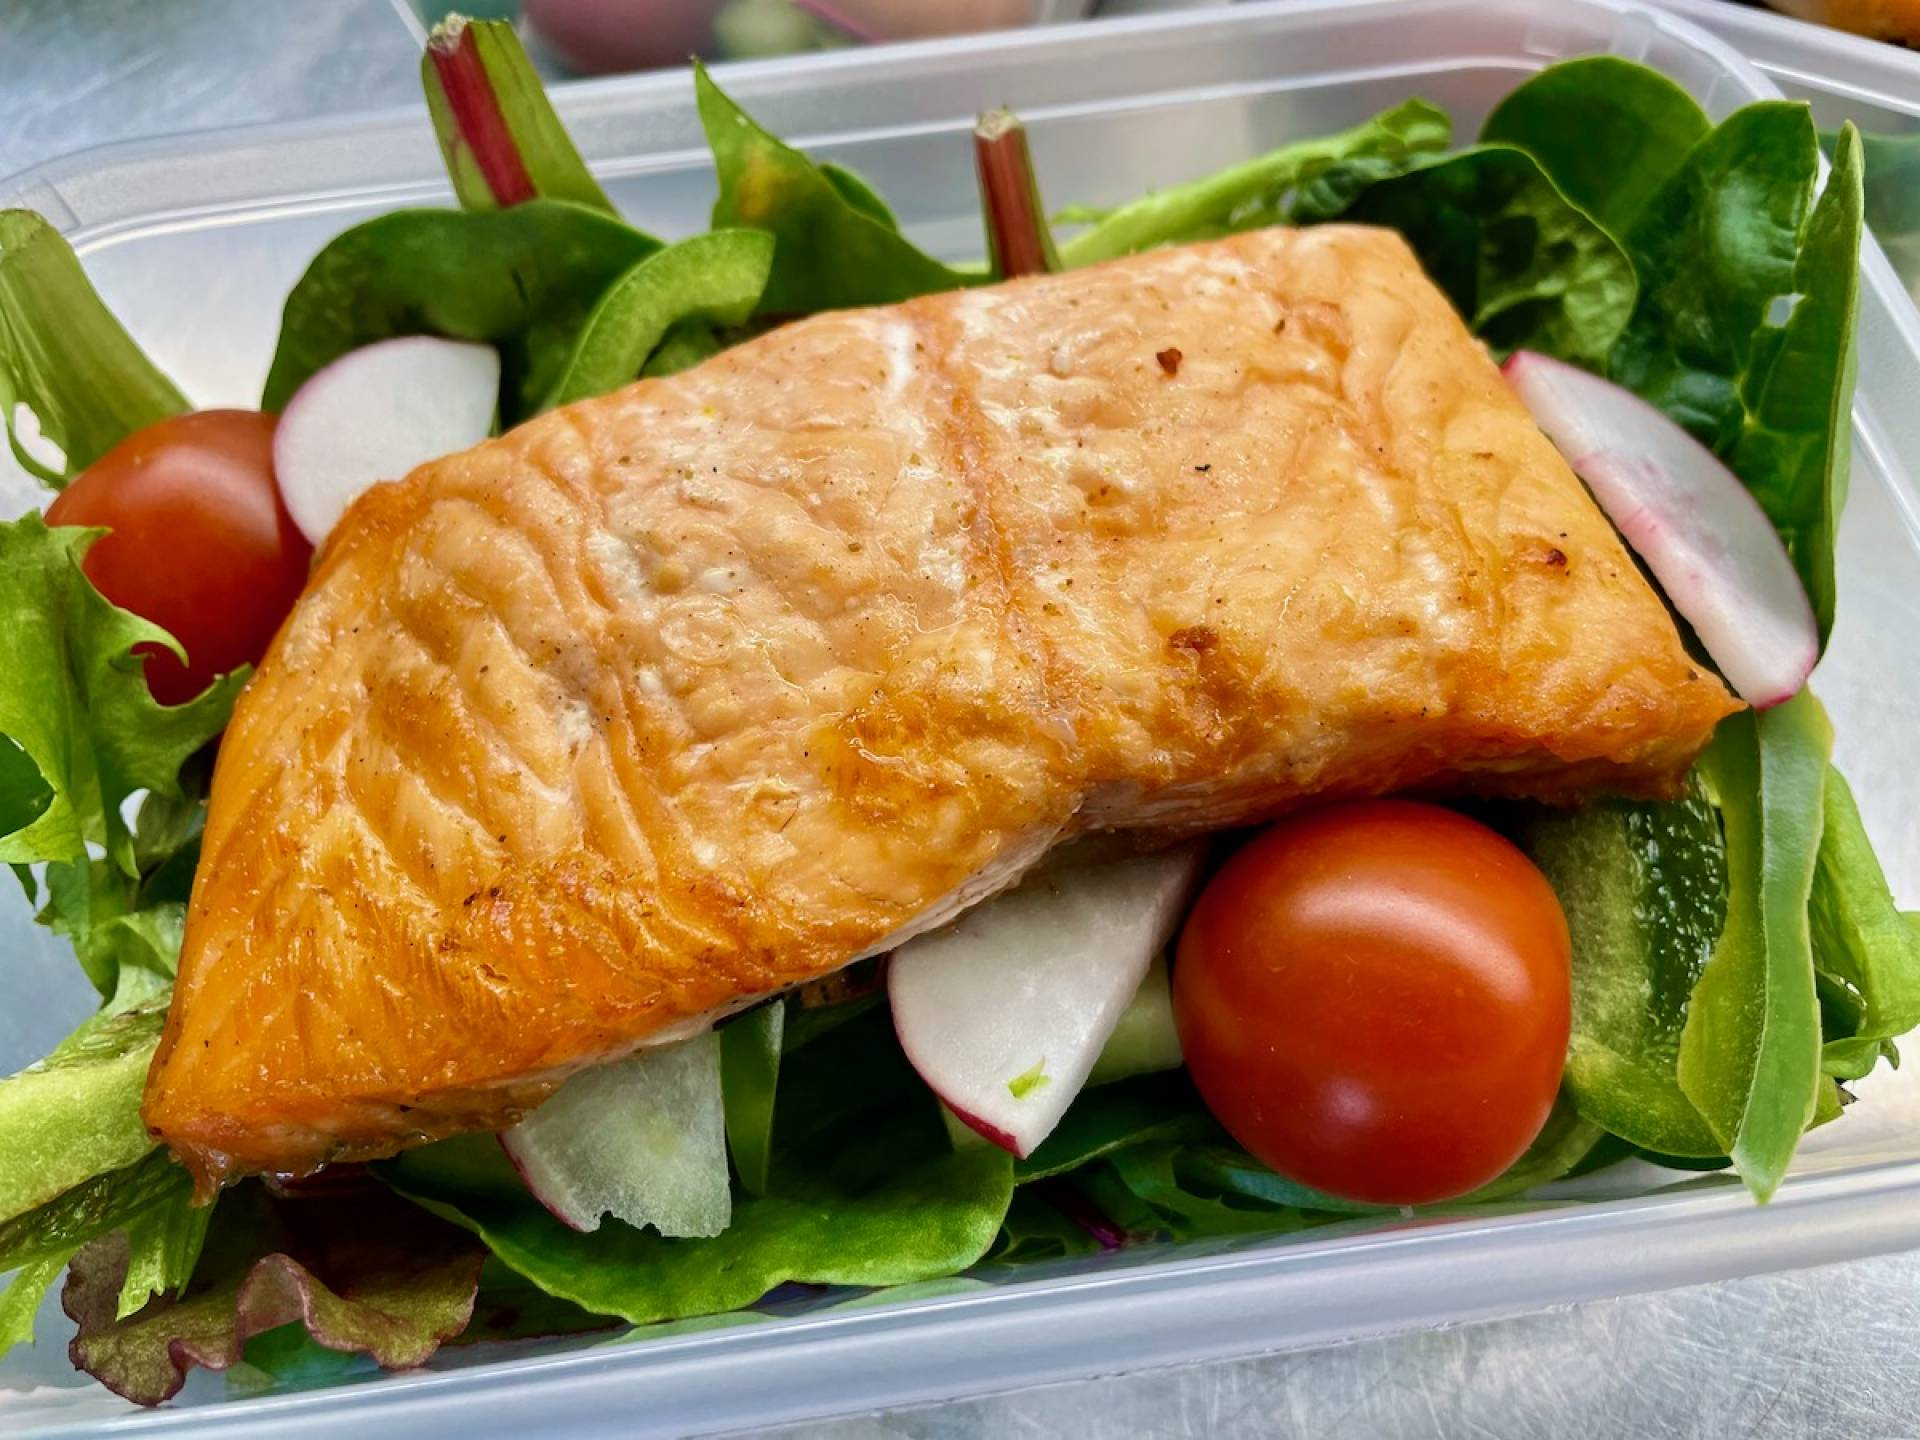 Oven Baked Salmon with Salad